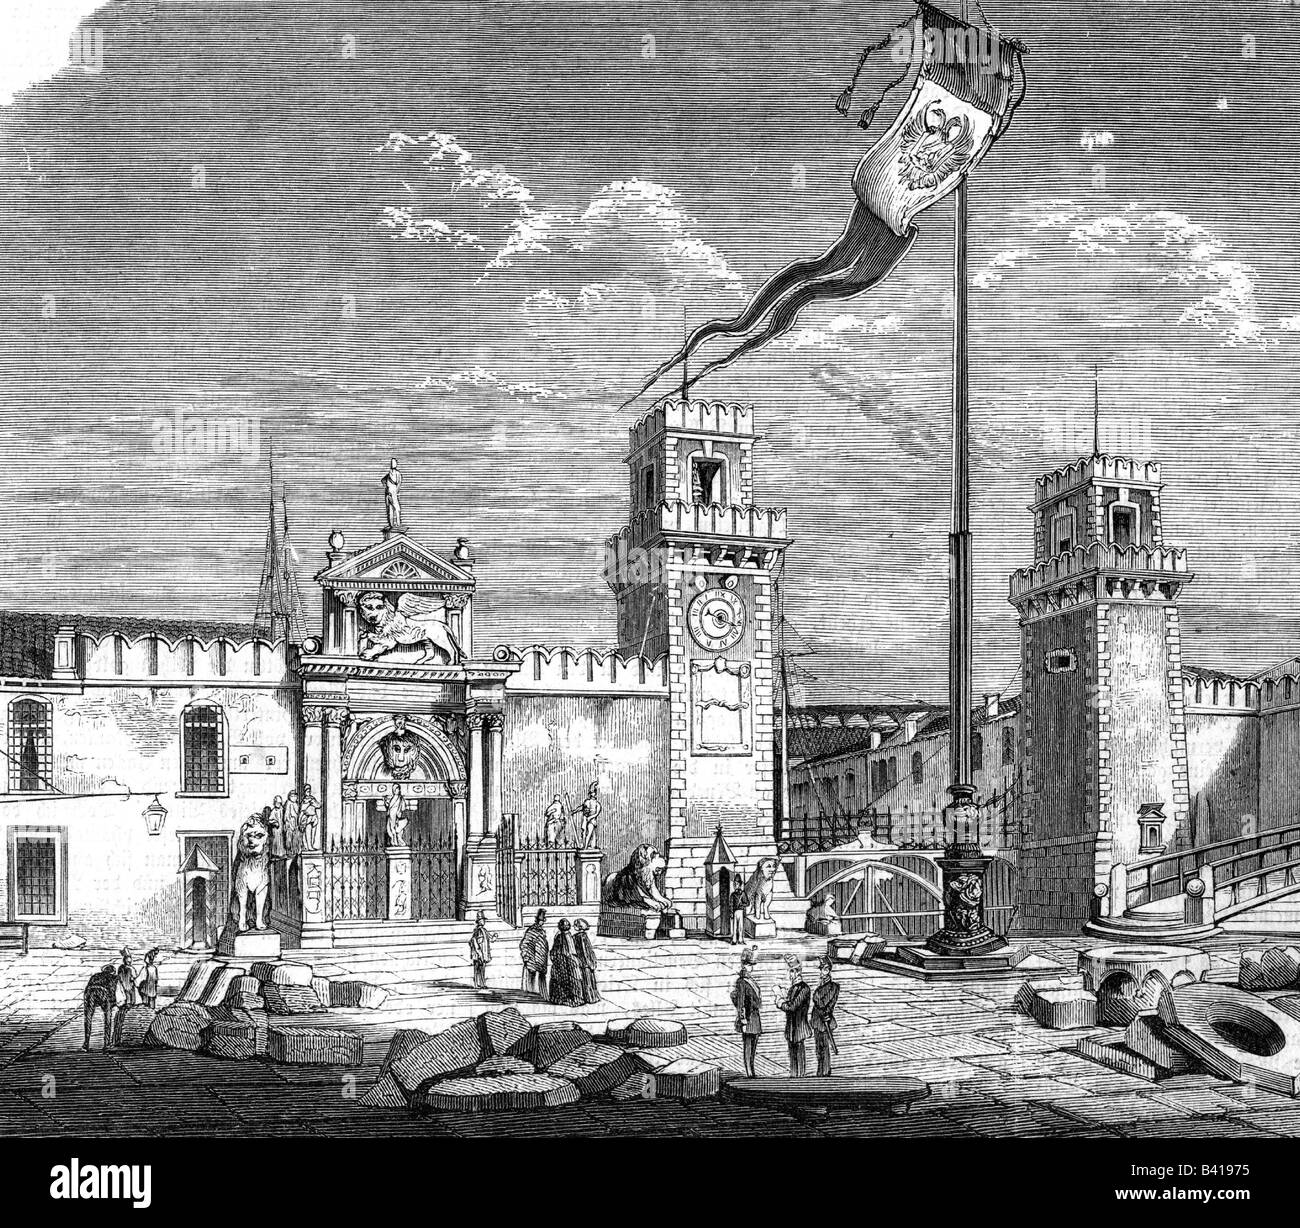 geography / travel, Italy, Venice, buildings, Arsenale, Entrance, engraving, 19th century, historic, historical, - Stock Image